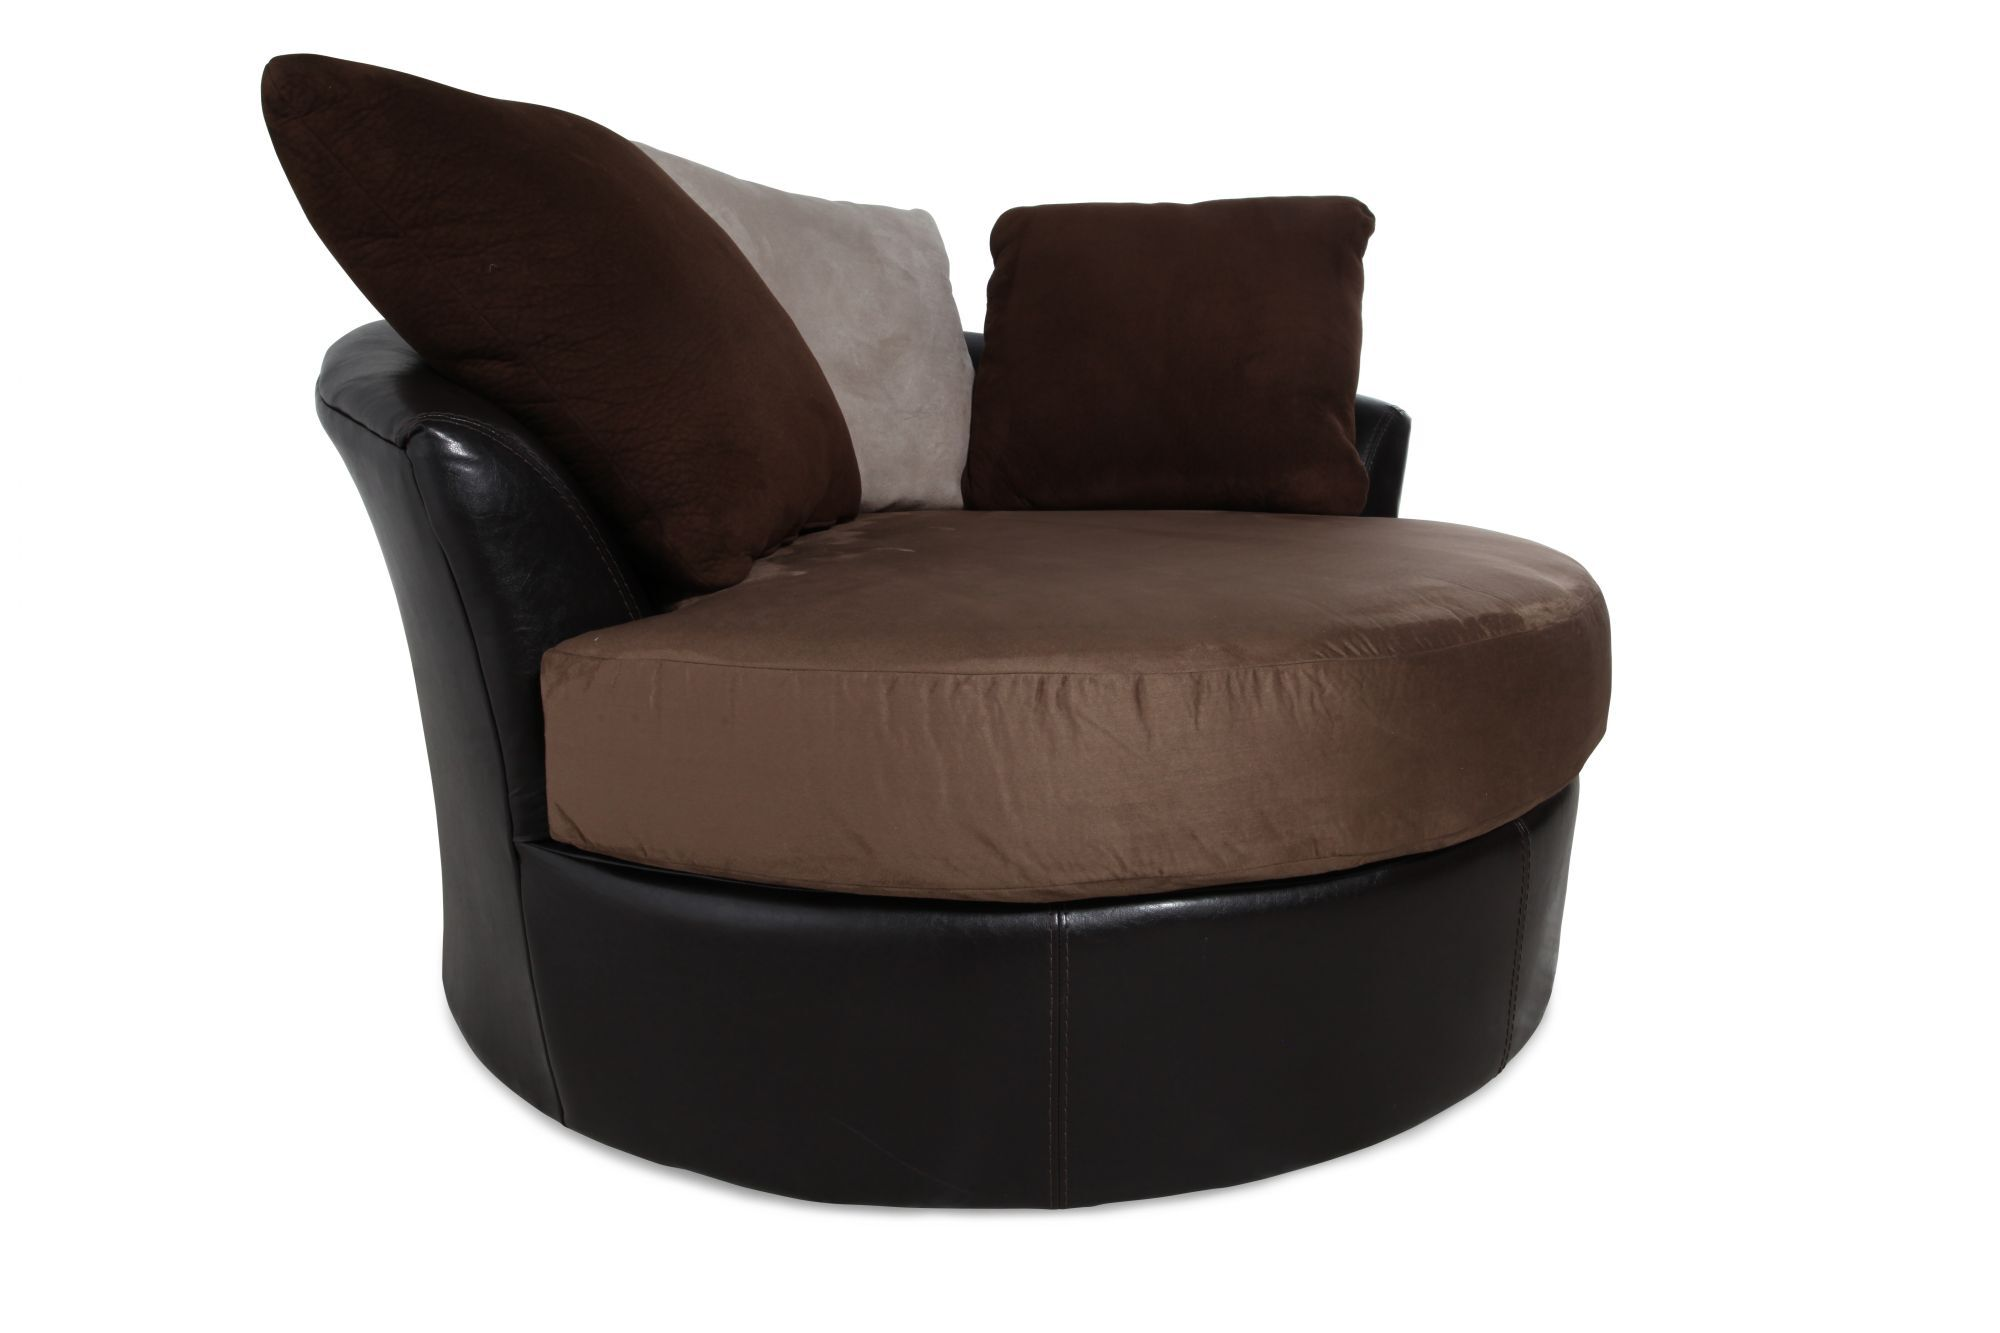 Circle Swivel Chair Round Microfiber 58 Quot Swivel Chair In Mocha Mathis